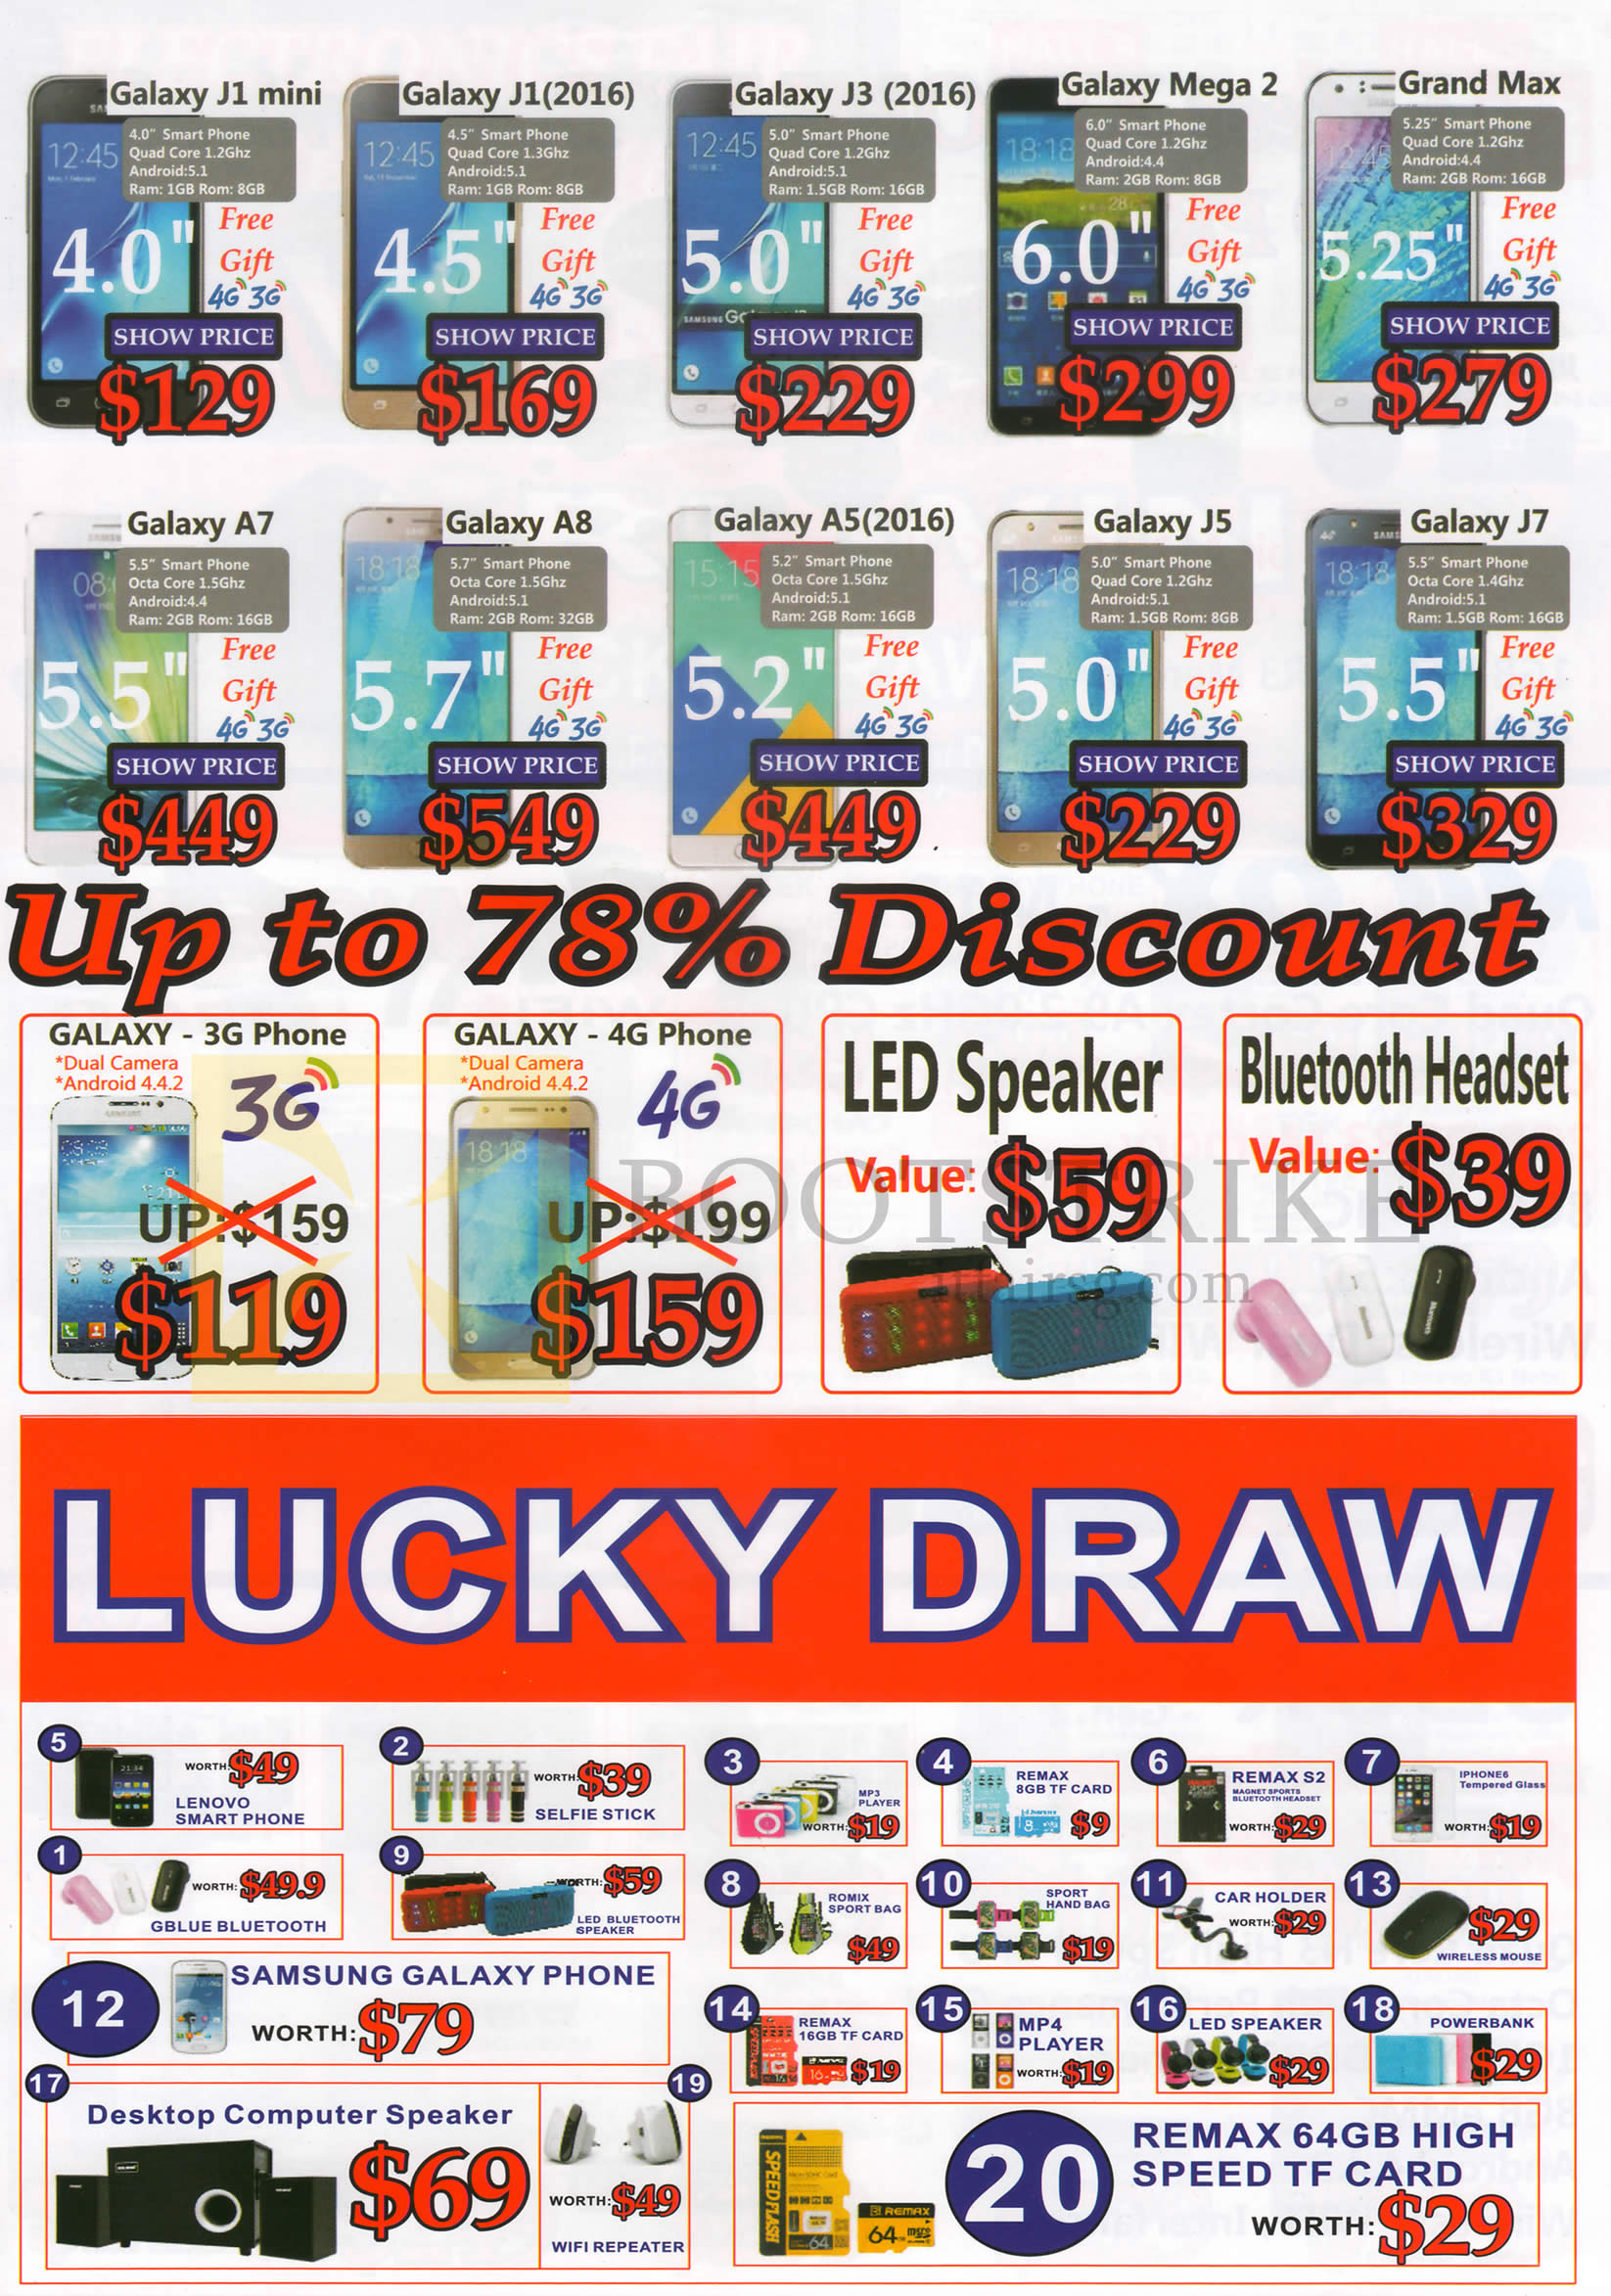 PC SHOW 2016 price list image brochure of SGVideoPro Smartphones, Speakers, Bluetooth Headset, Selfie Stick, MP3 MP4 Players, Bags, Memory Cards, Tempered Glass, Mouse, Powerbank, Headset Galaxy